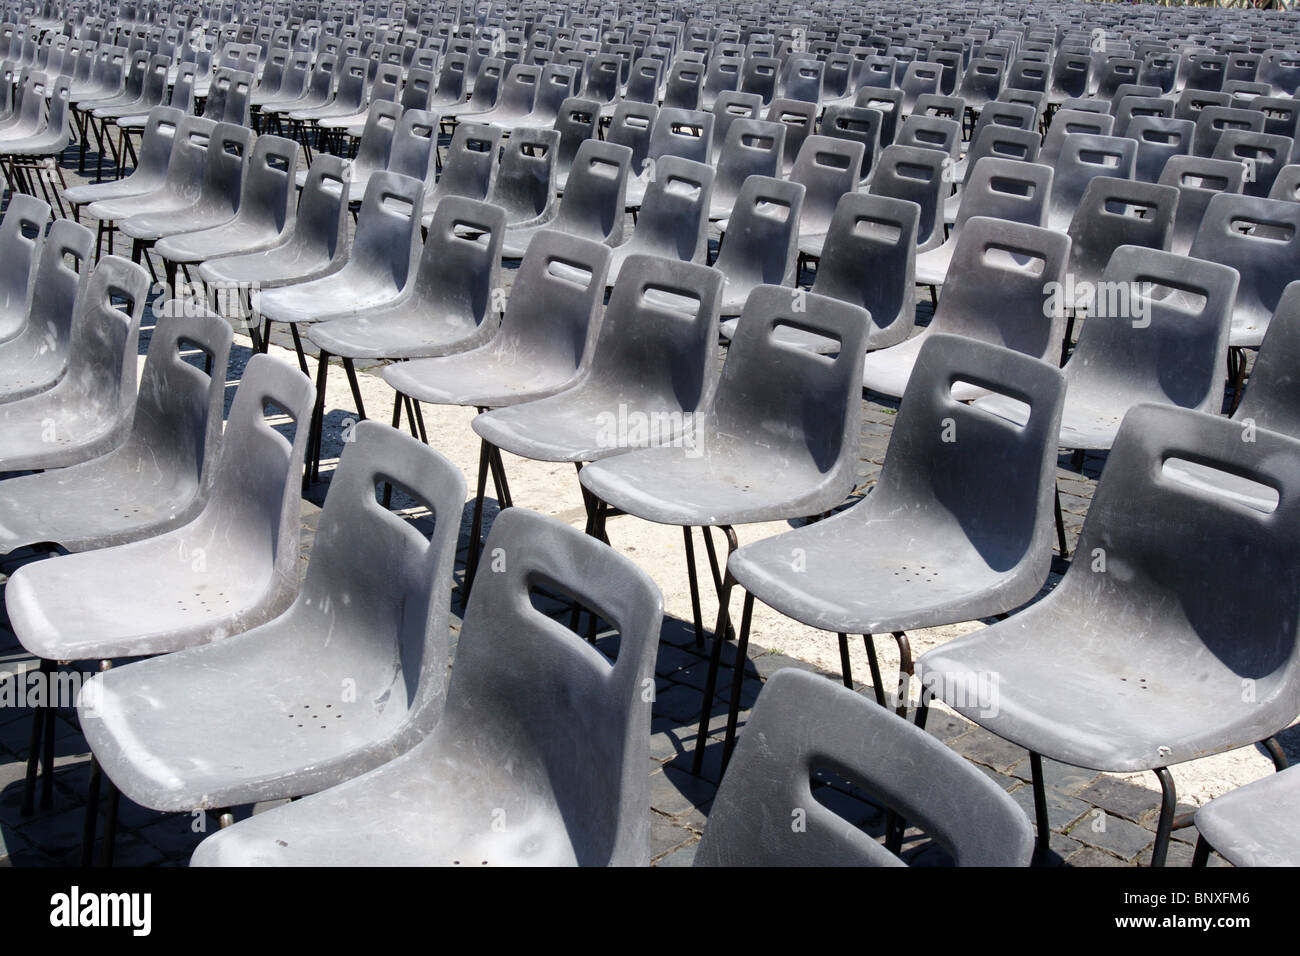 plastic chairs ordered St.Peter Rome Vatican group - Stock Image